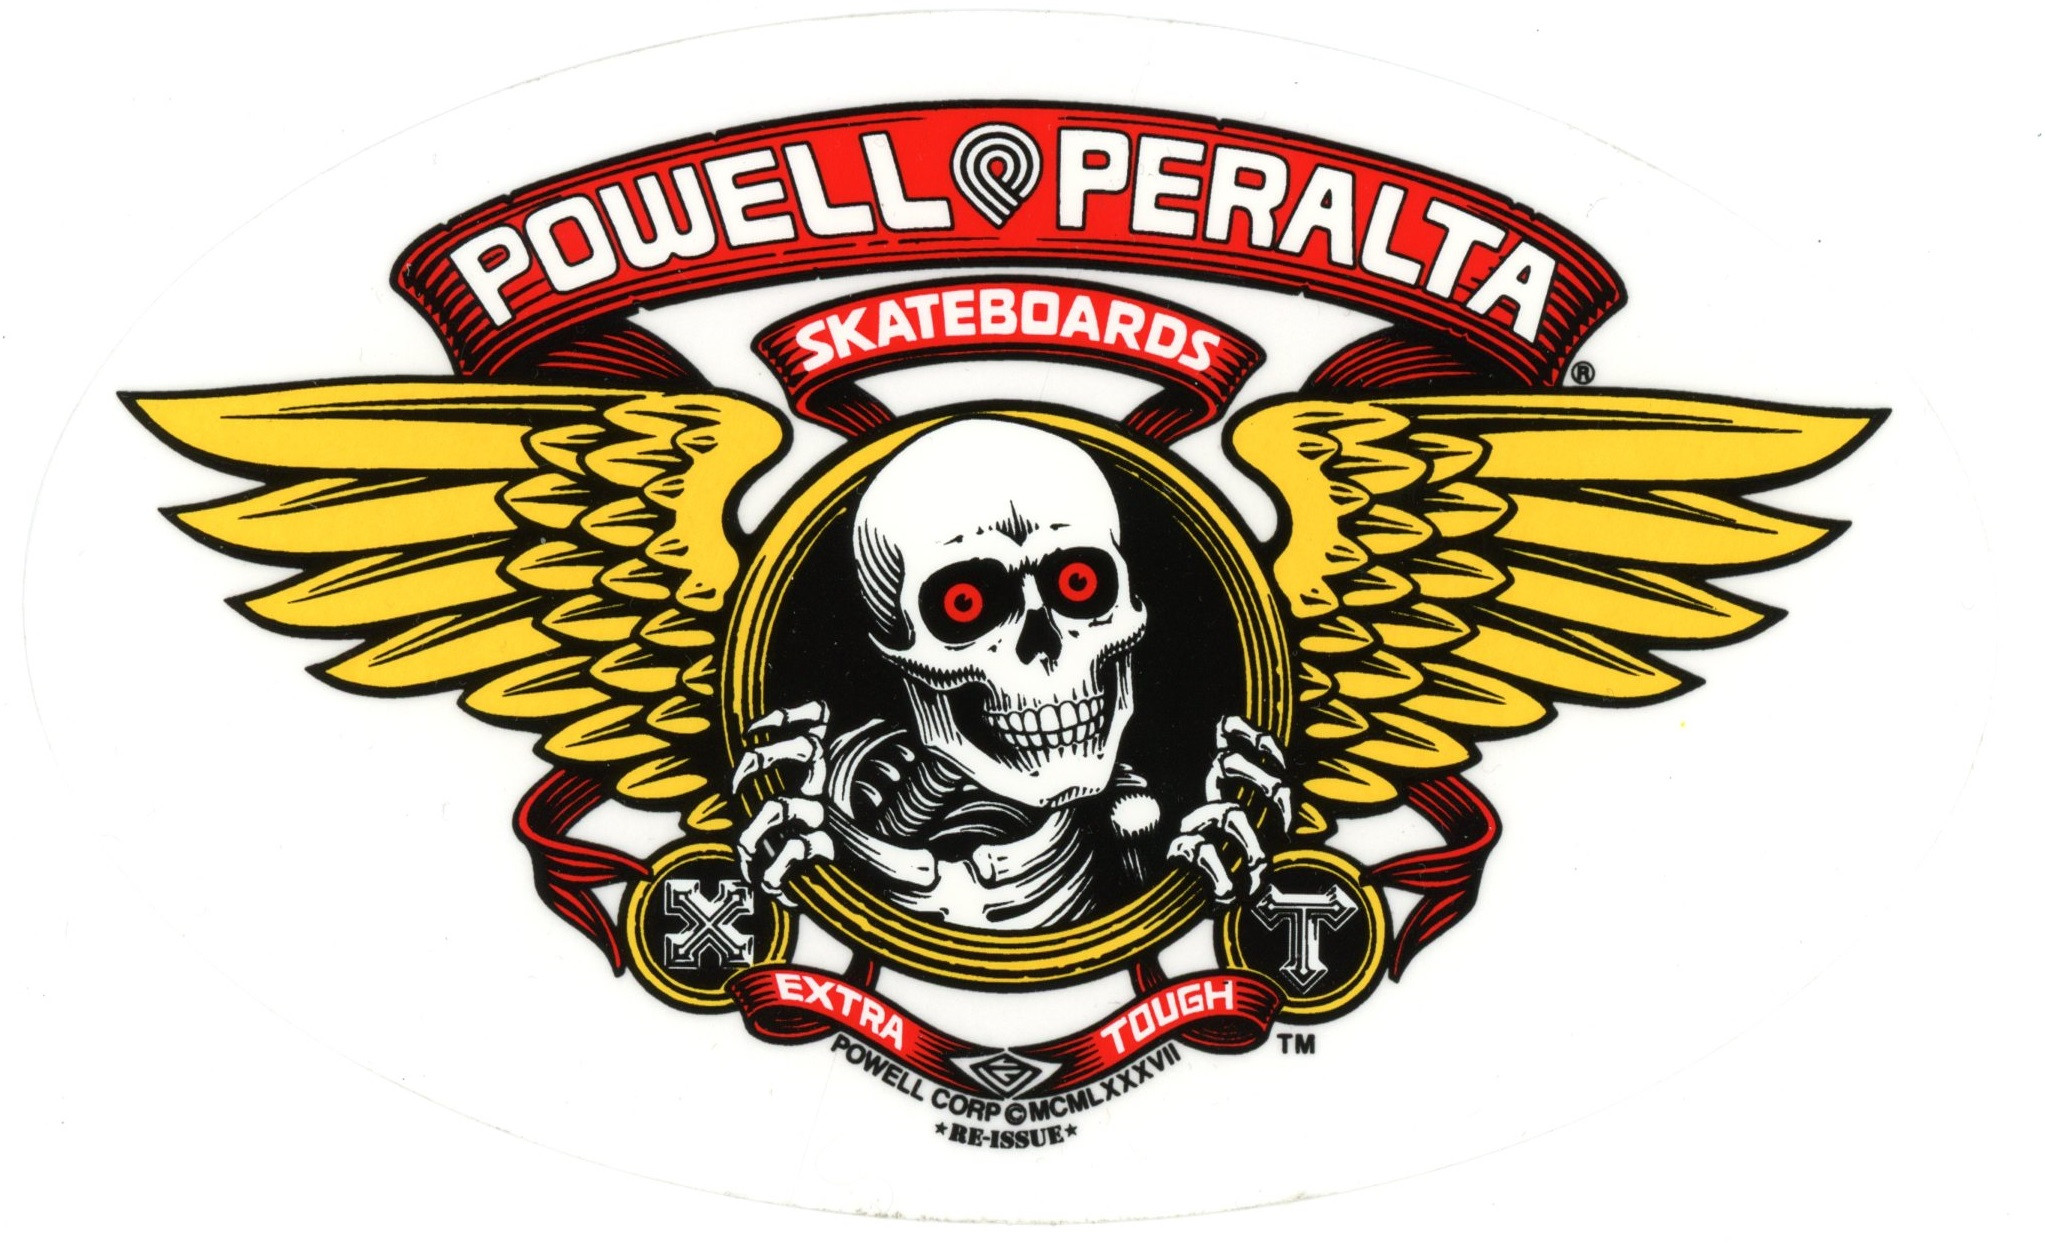 Powell_Peralta-Skateboard